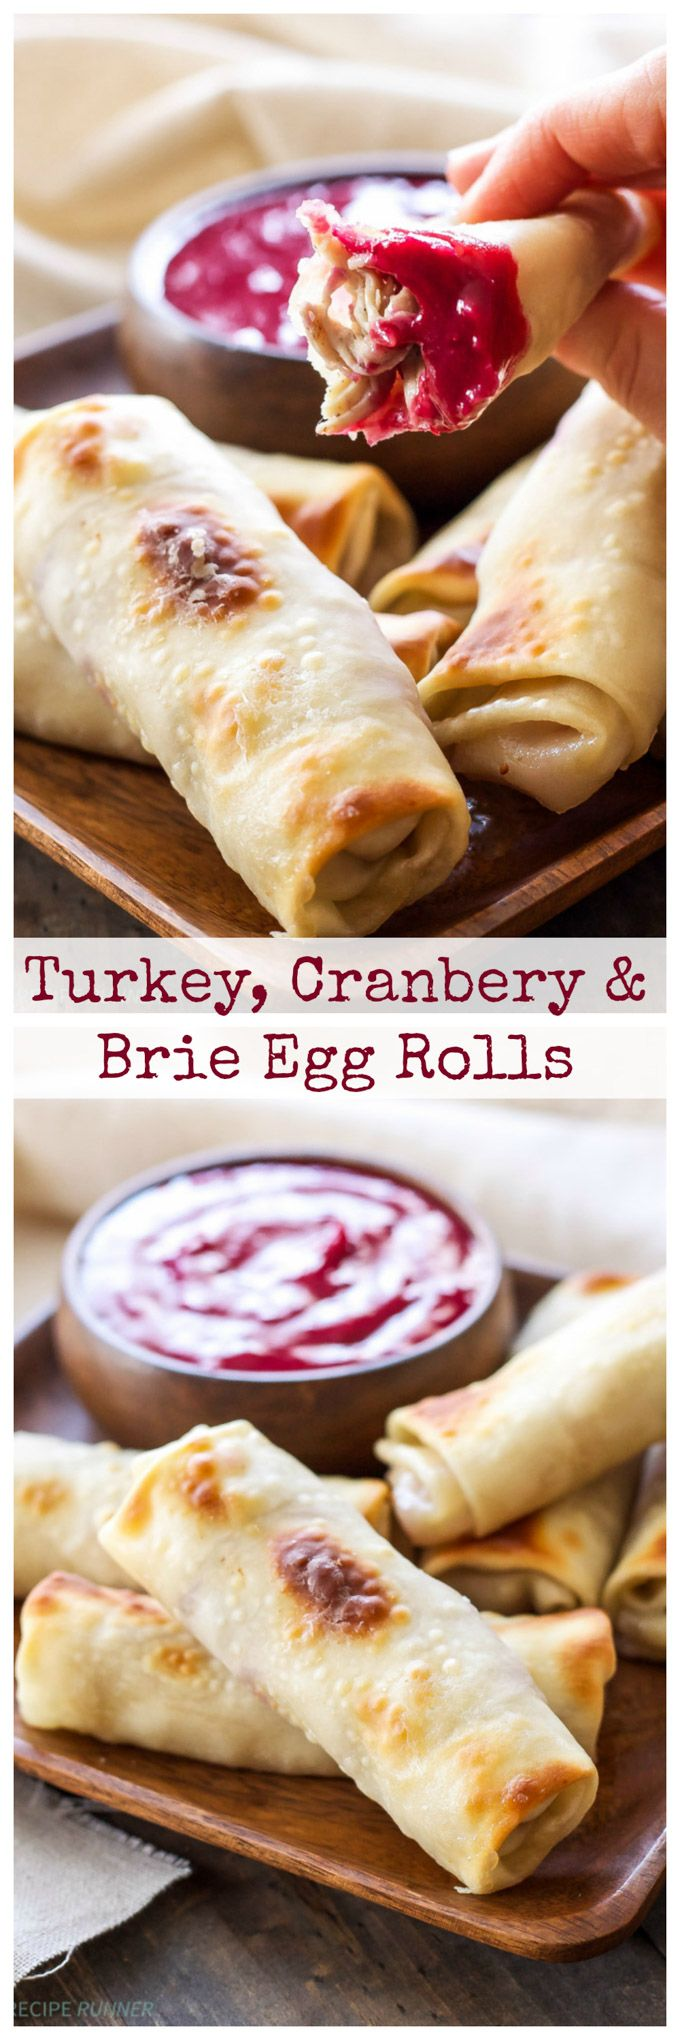 Turkey Cranberry and Brie Egg Rolls....Baked egg rolls stuffed with leftover Thanksgiving turkey, cranberry sauce and a slice of brie cheese!!